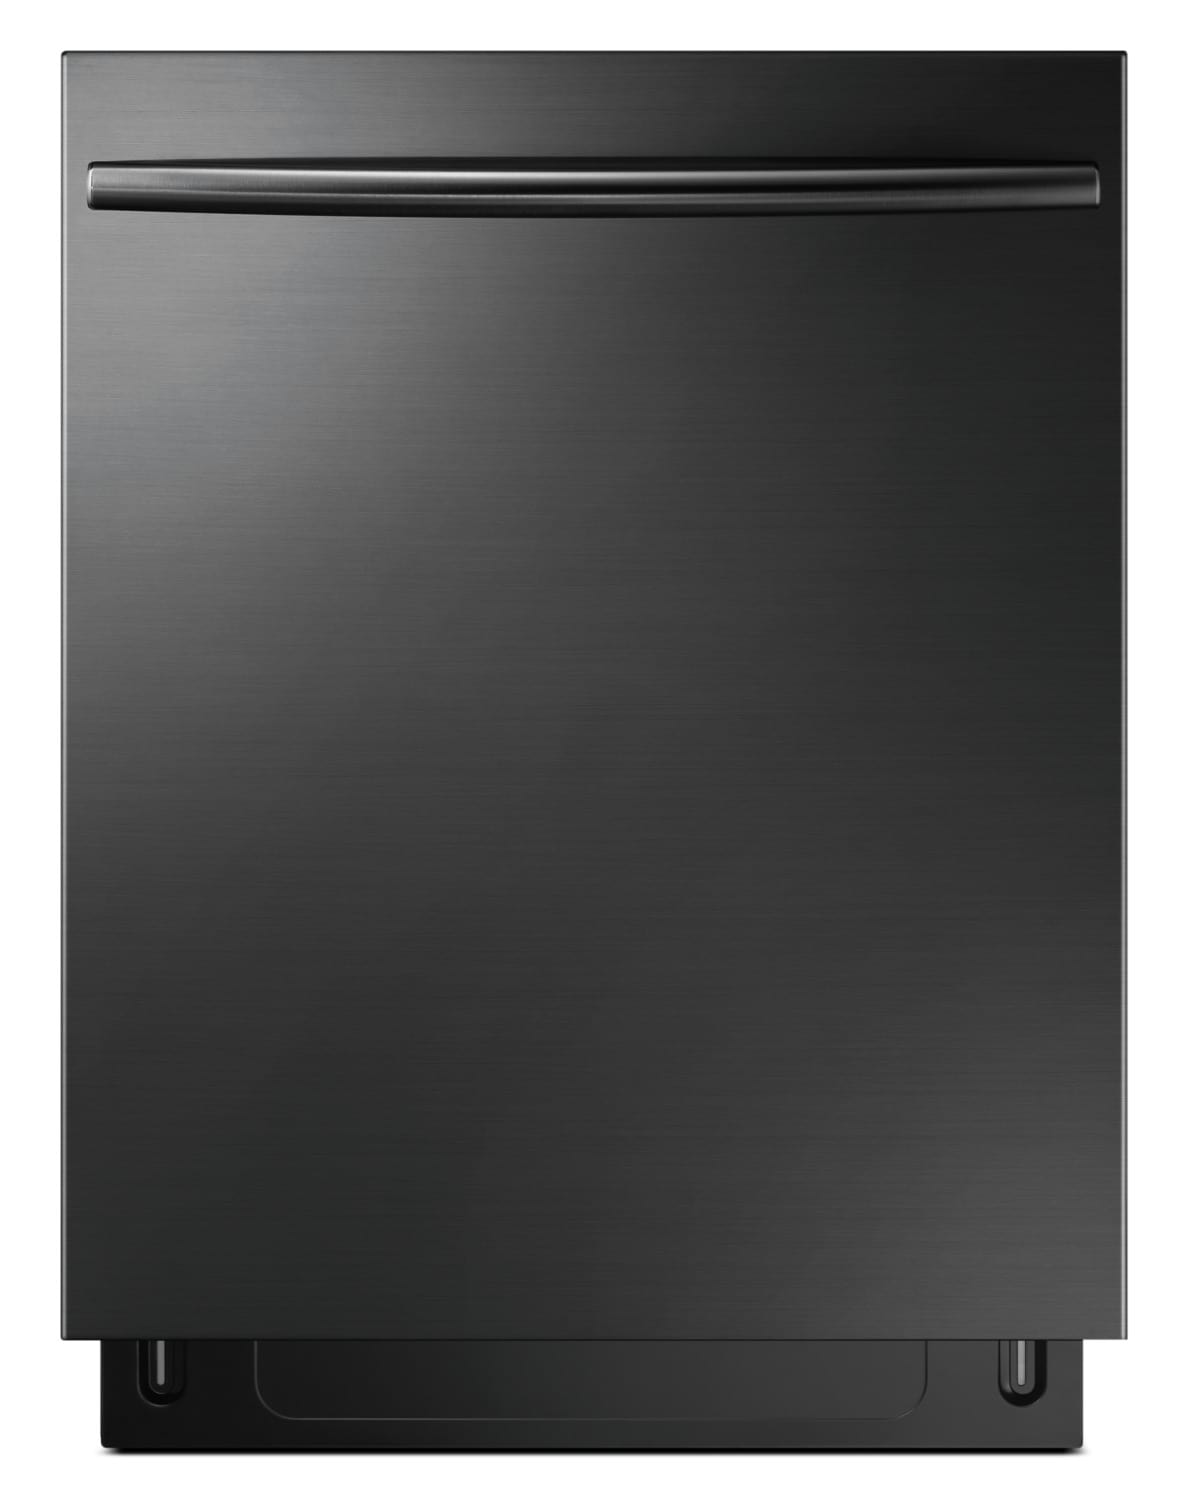 "Clean-Up - Samsung Black Stainless Steel 24"" Dishwasher -DW80K7050UG/AC"